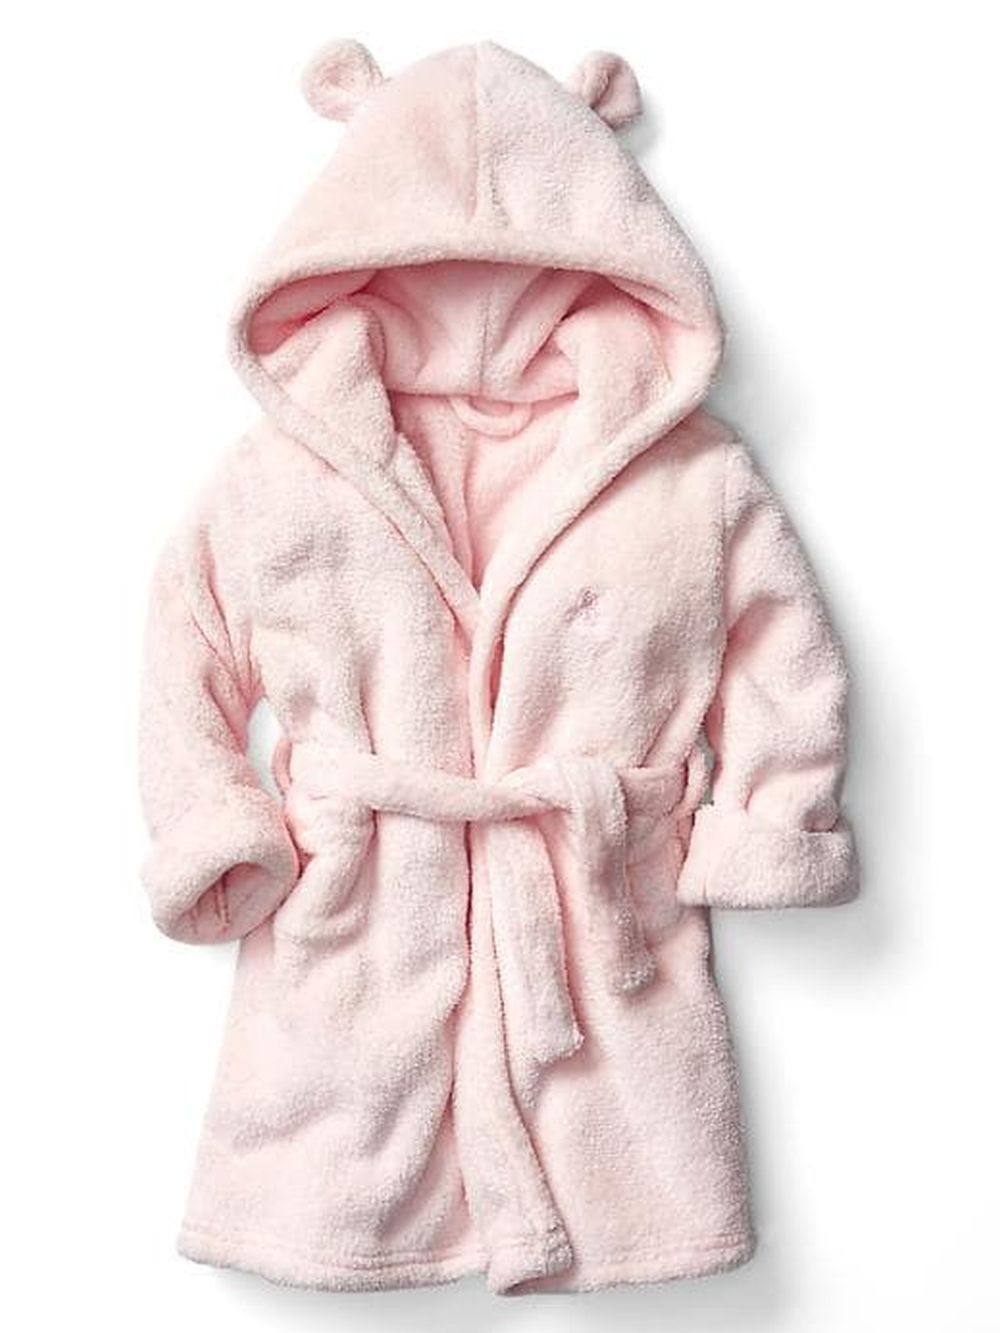 Sleepwear 147215  New Baby Gap Soft Pink Fleece Ears Hooded Sleep Robe Nwt  3T 4T 5T Toddler Girls -  BUY IT NOW ONLY   31 on eBay! 89715b486